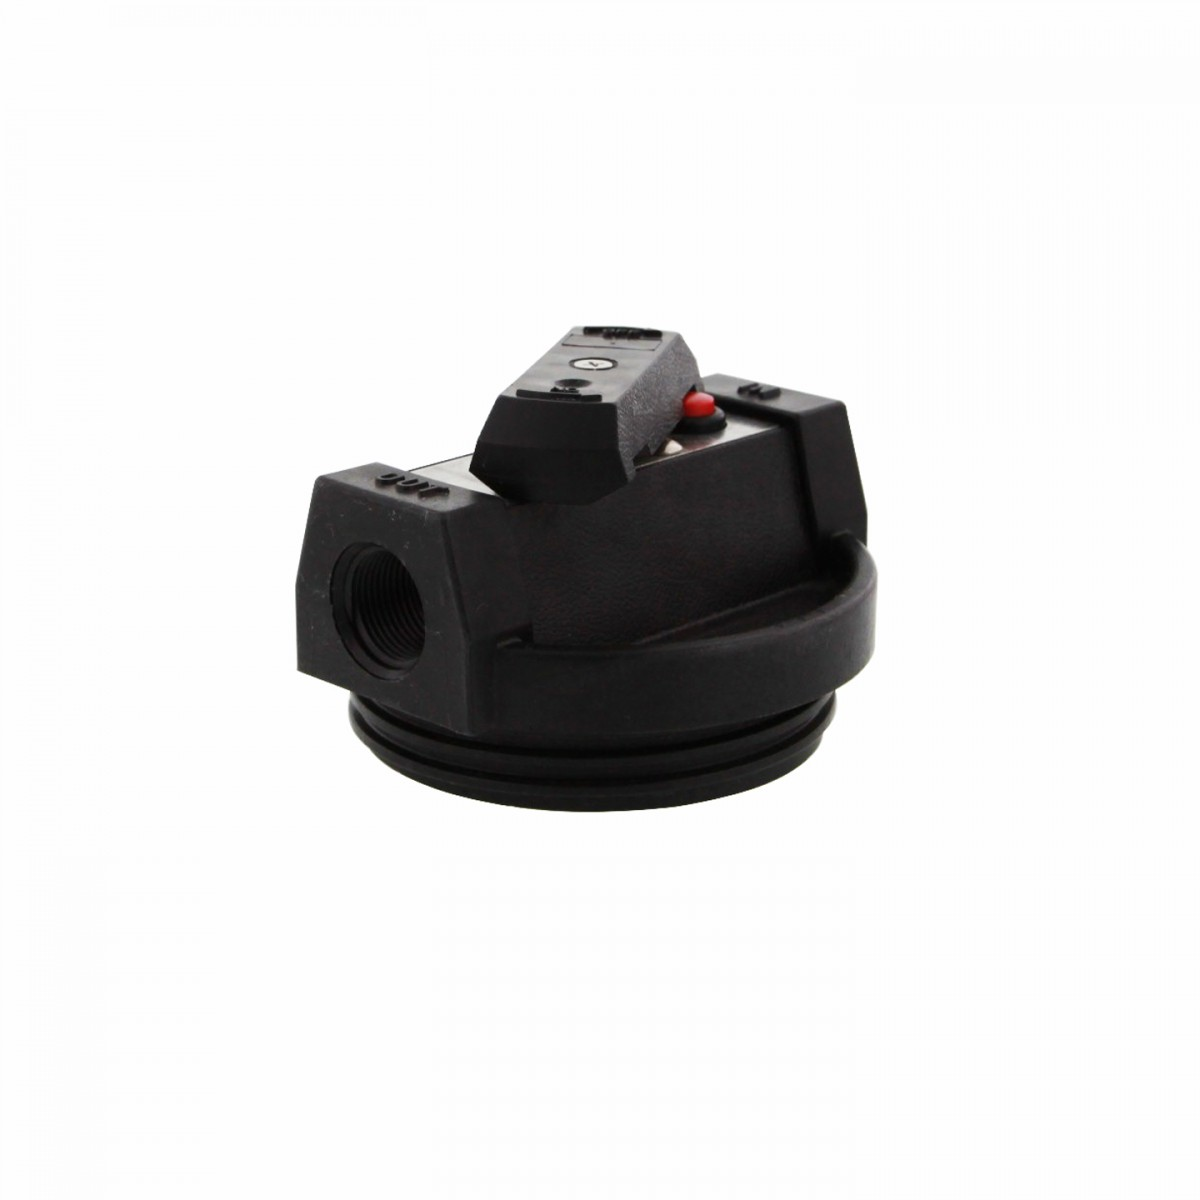 Pentek 154134 Valve In Head Water Filter Housing Cap 3/4 inch Housing